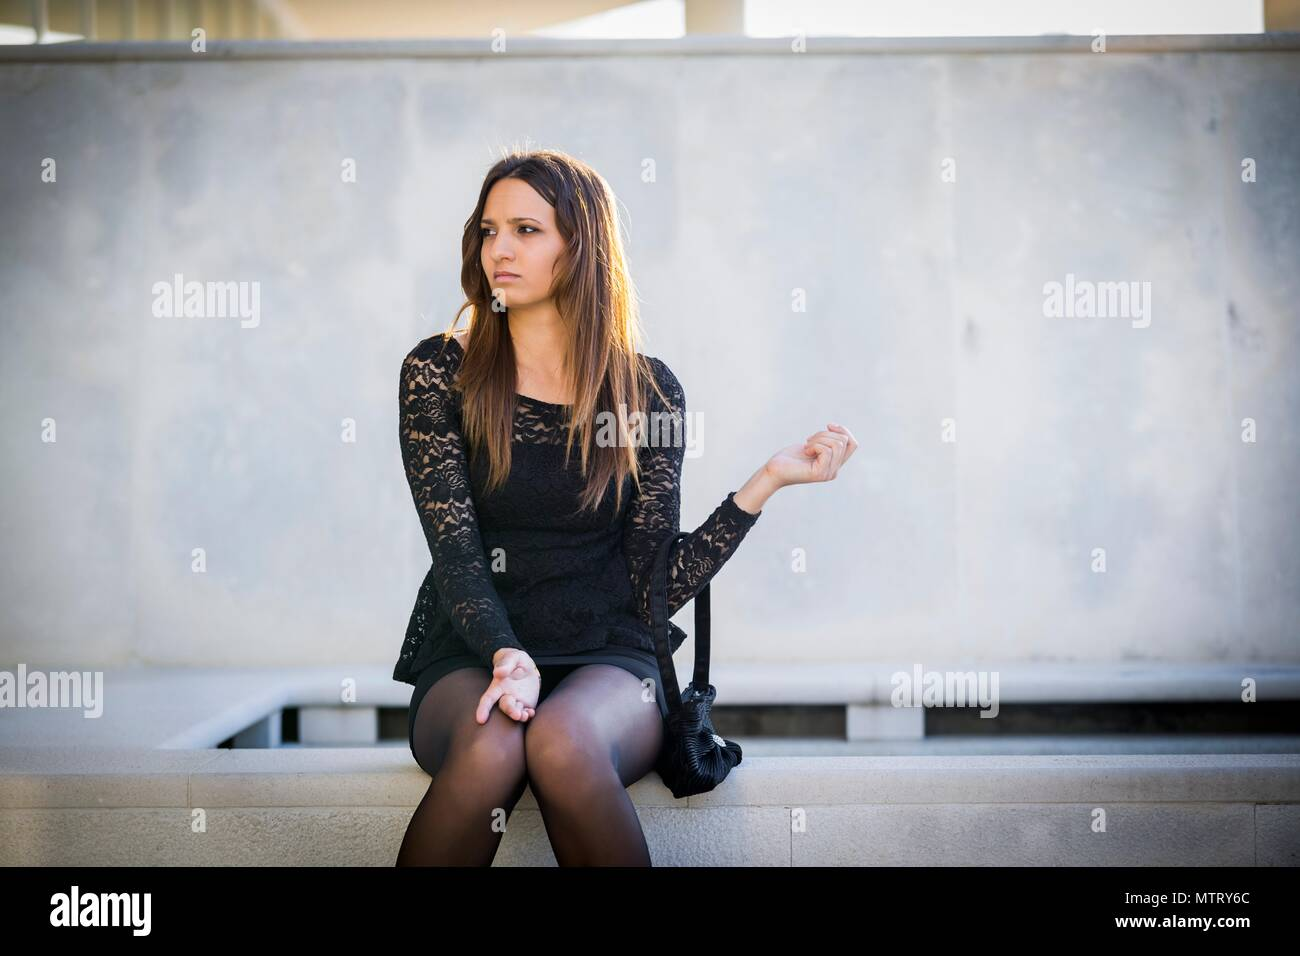 Young woman legs heels looking away serious and concerned distrust - Stock Image